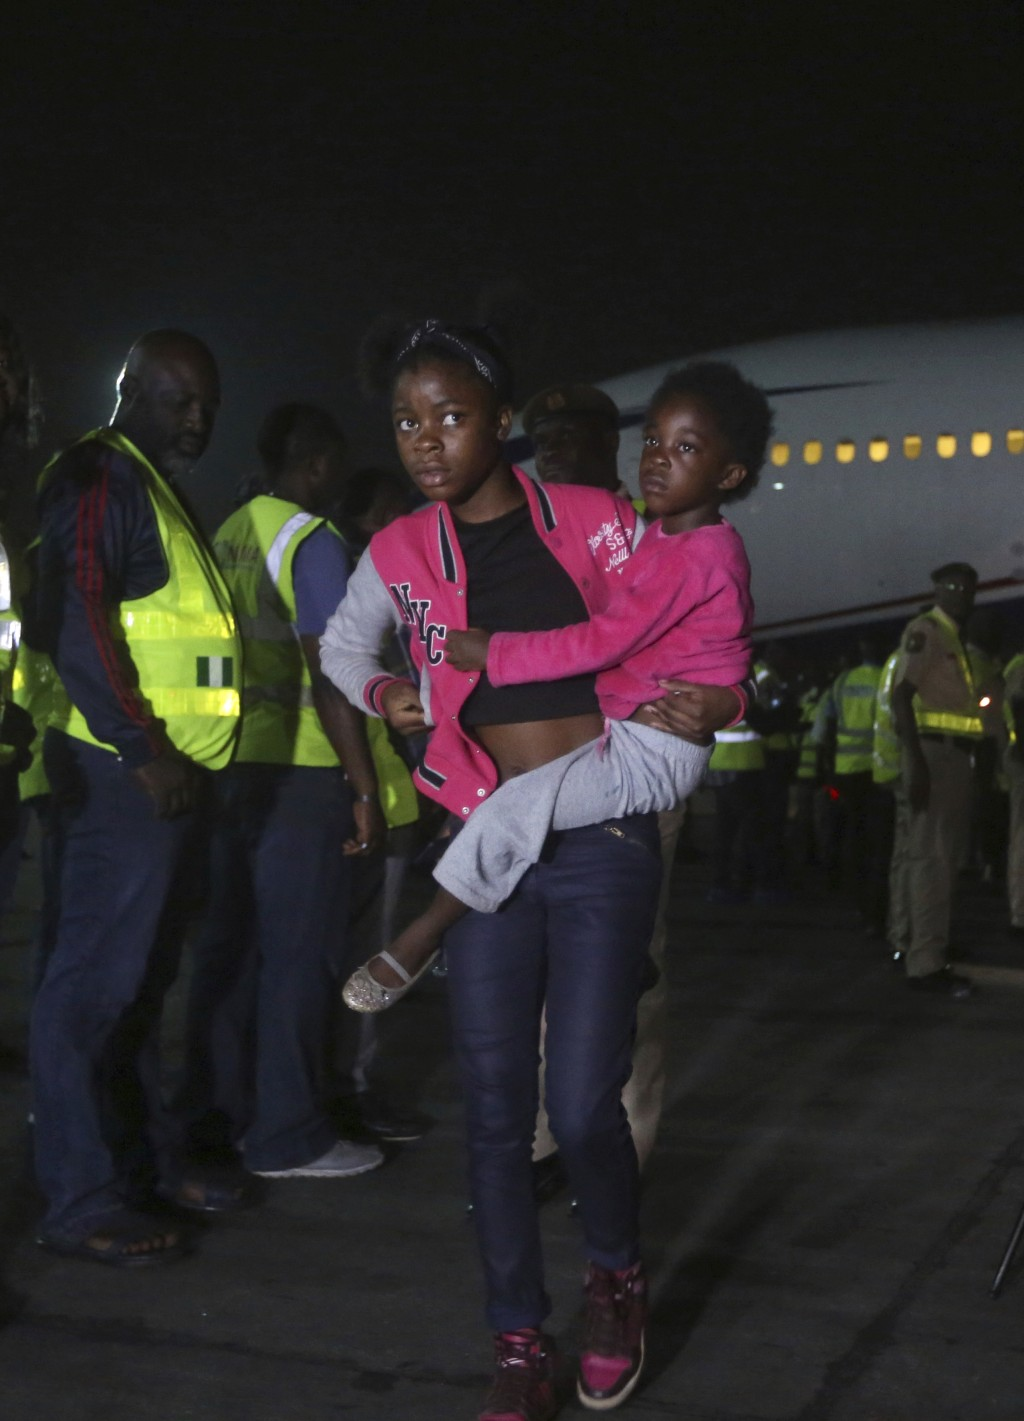 Nigerian returnees from South Africa due to recently violence targeted at foreigners arrive on an Air Peace airline at the Murtala Muhammed Internatio...